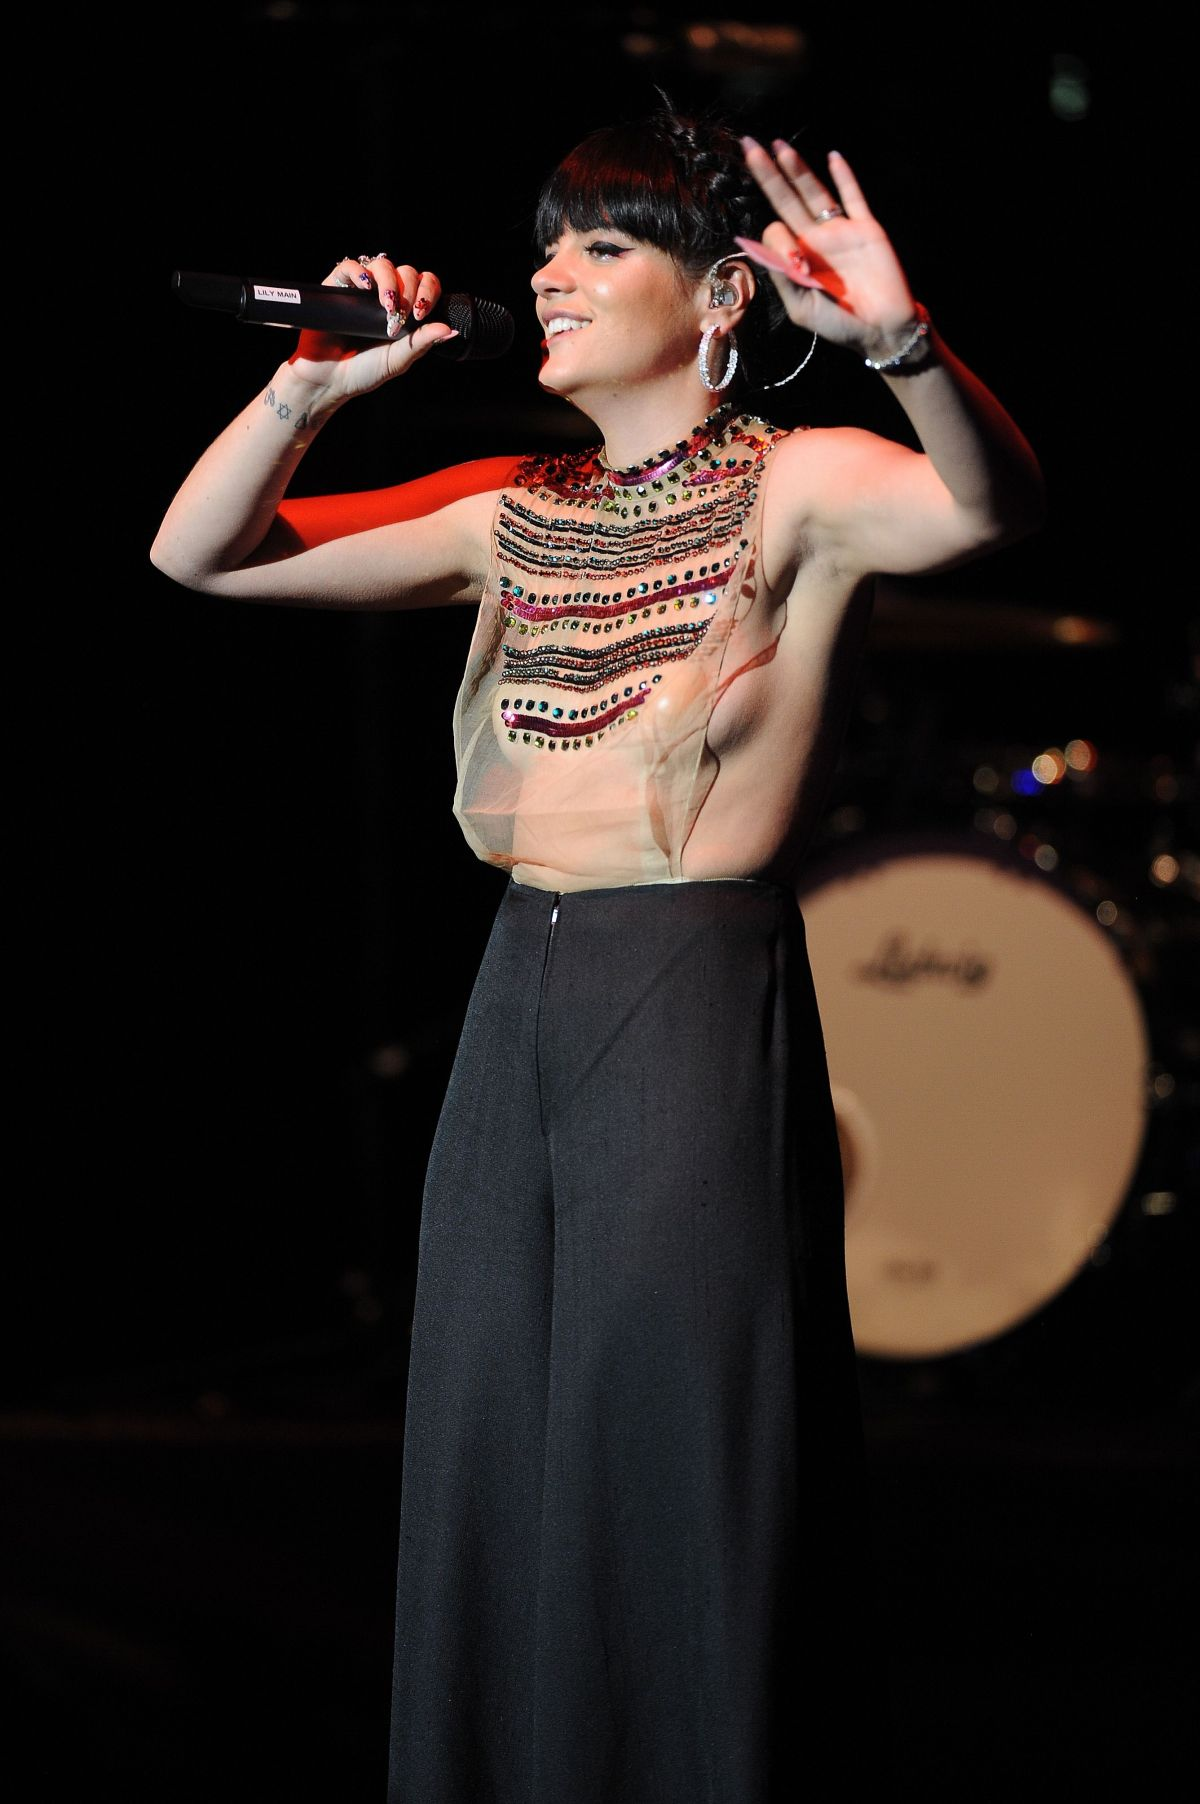 LILY ALLEN Performs at City Rocks in London